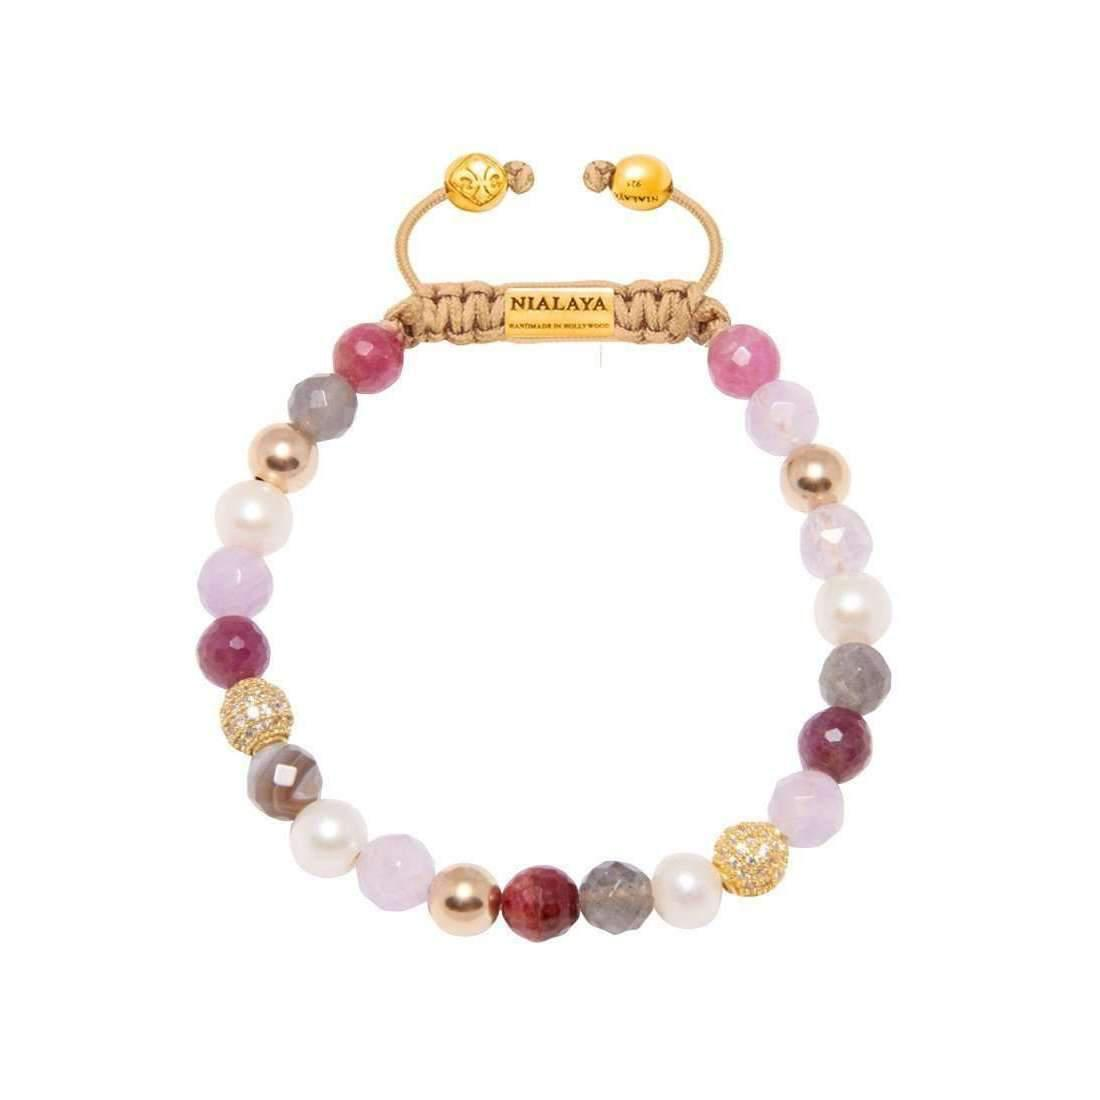 Nialaya Beaded Wristband with White Pearl and Gold - Extra Small n39e8TW